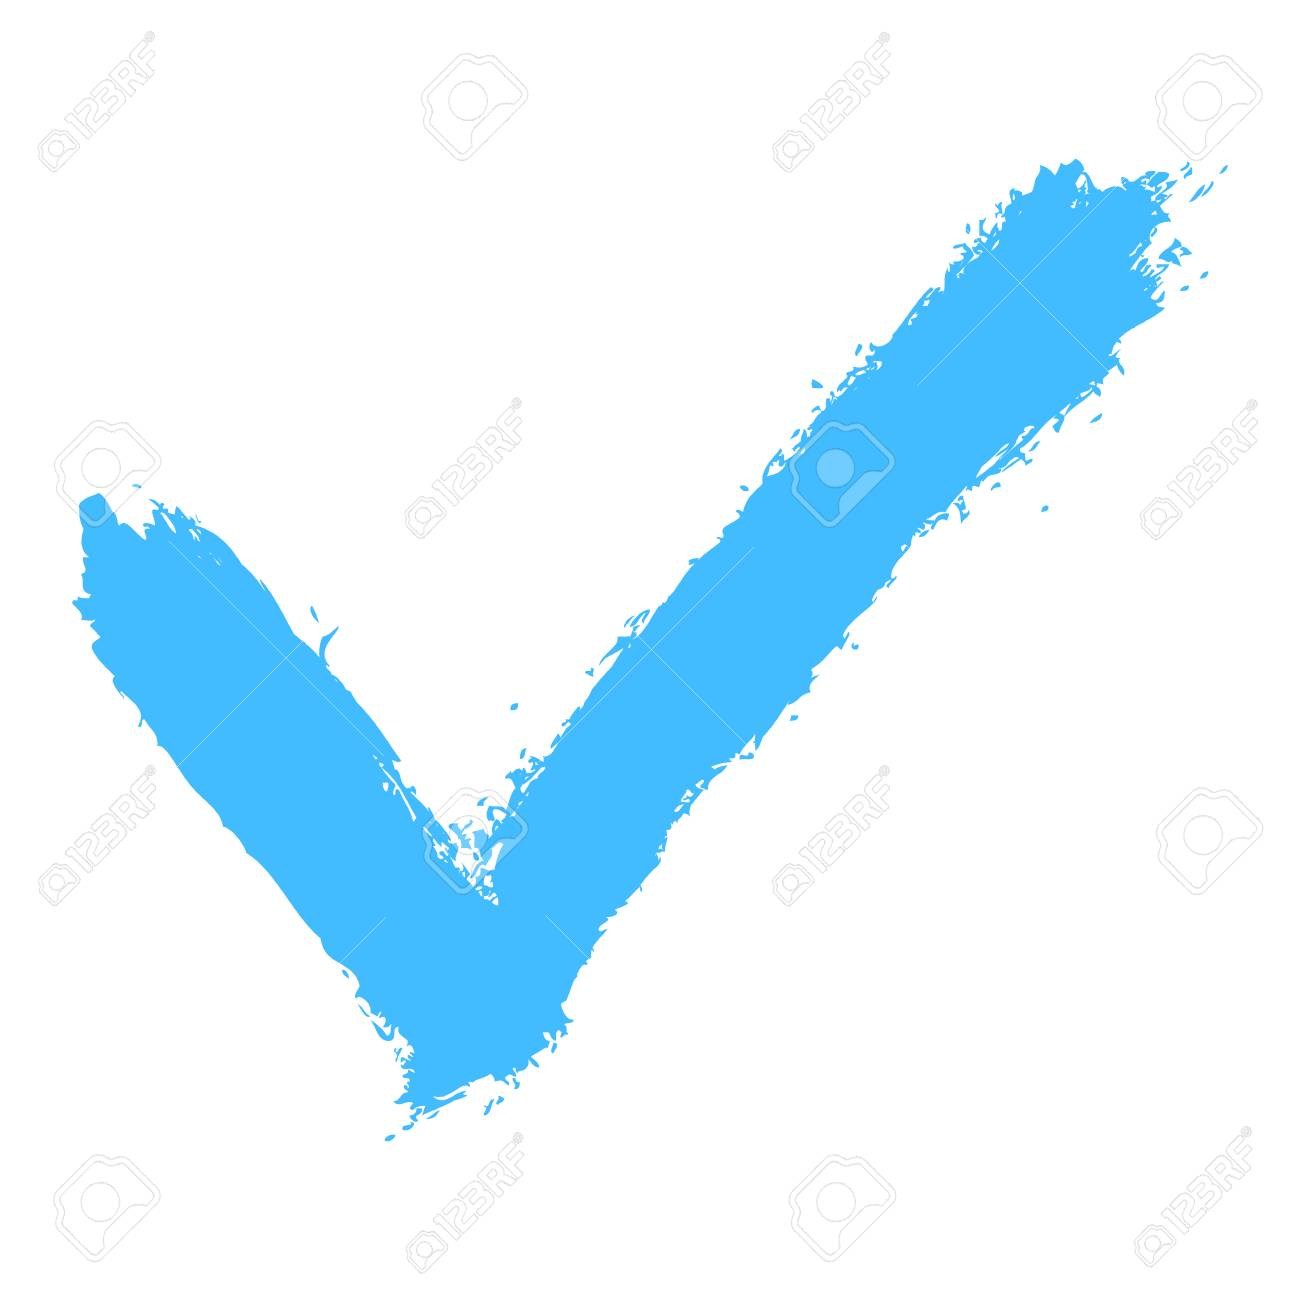 Use It In All Your Designs Check Mark Symbol Made Of Ink Strokes